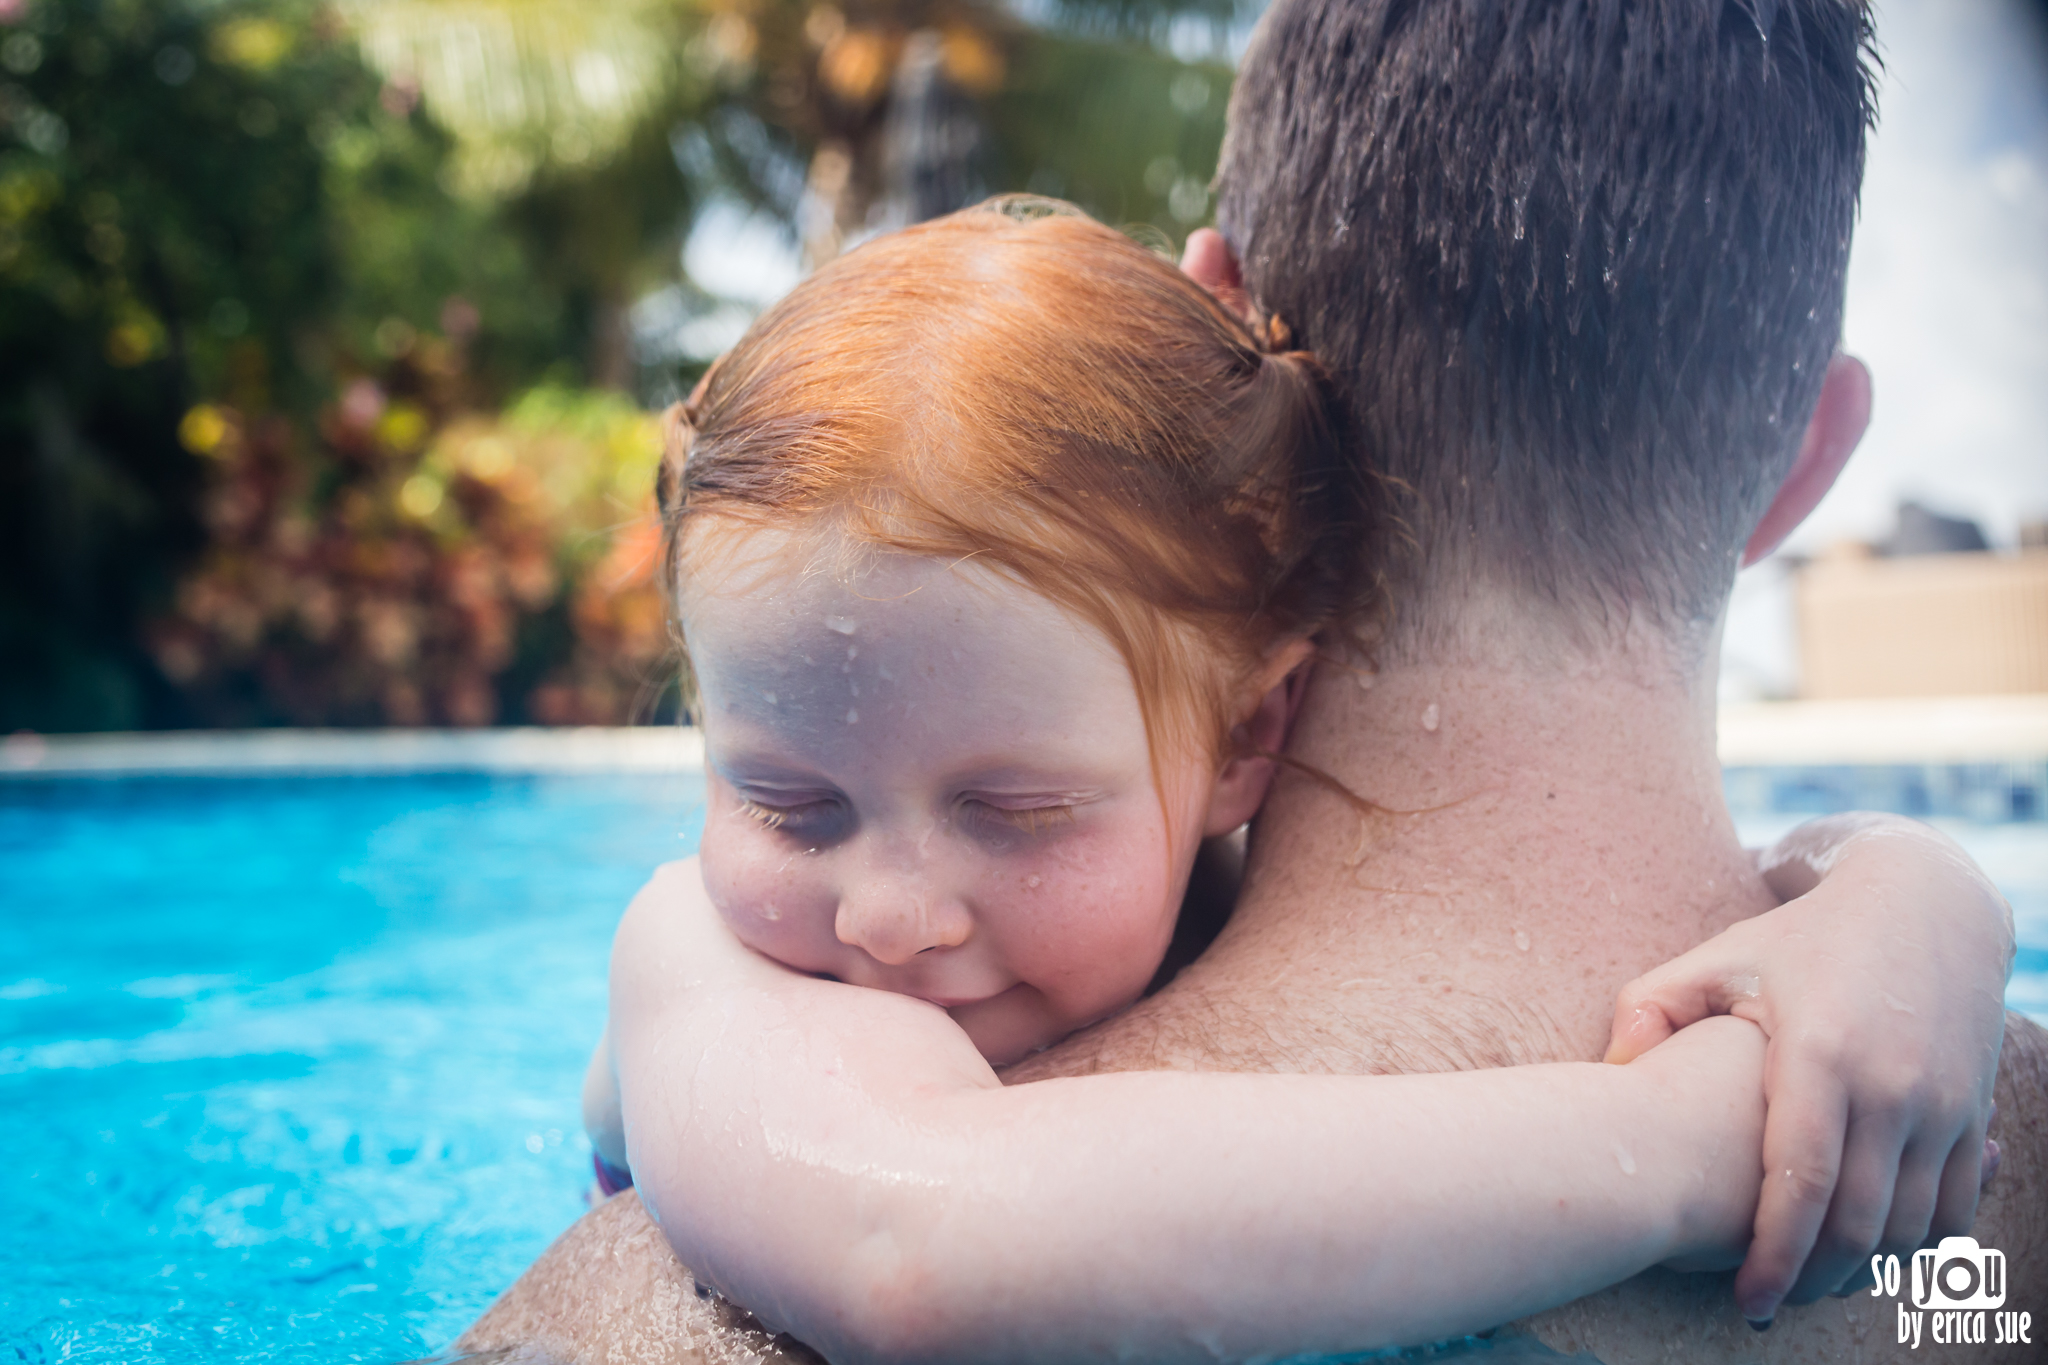 underwater-swim-family-photography-ft-lauderdale-so-you-by-erica-sue-1877.jpg